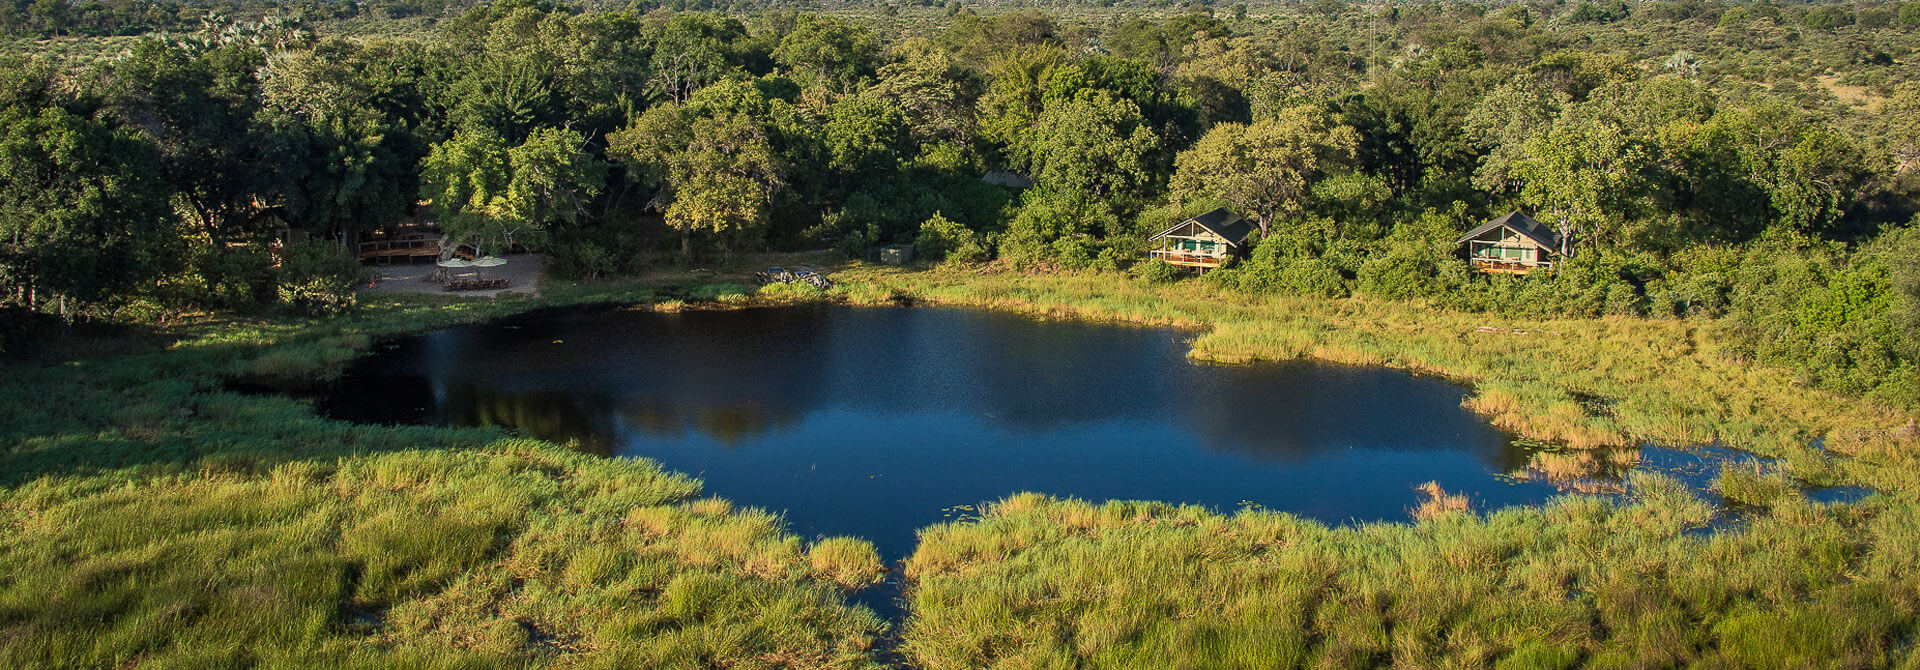 botswana-family-safaris-seba-camp-sli03